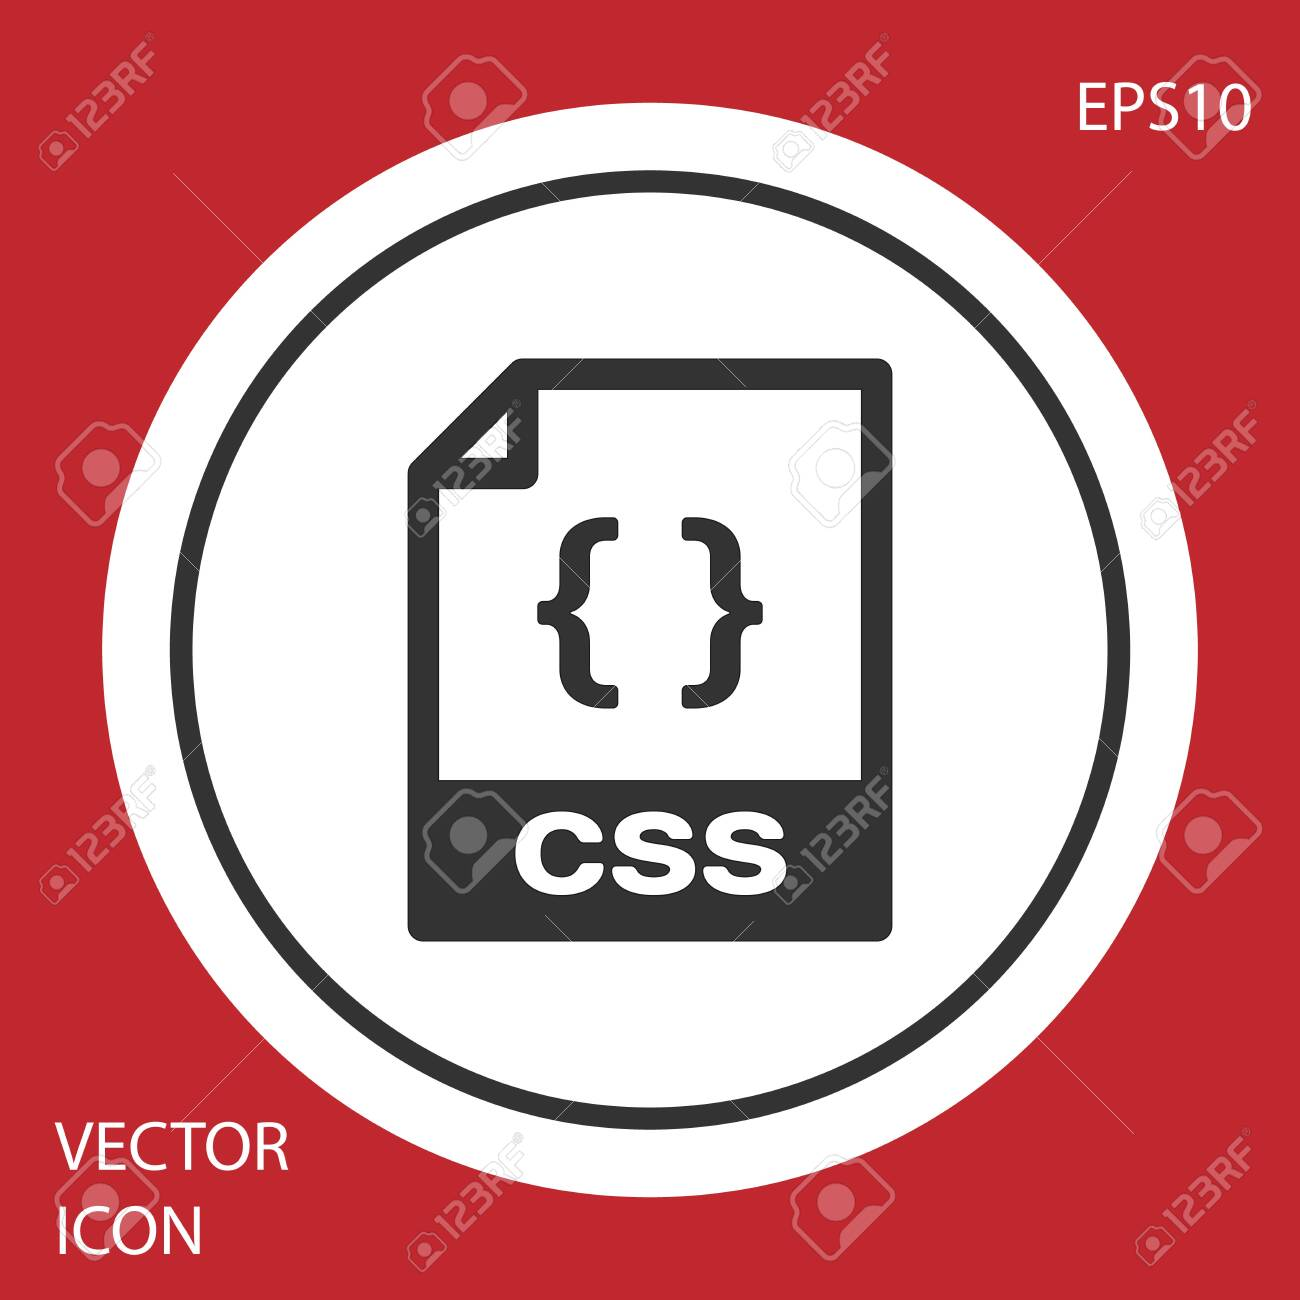 Grey CSS file document icon  Download css button icon isolated